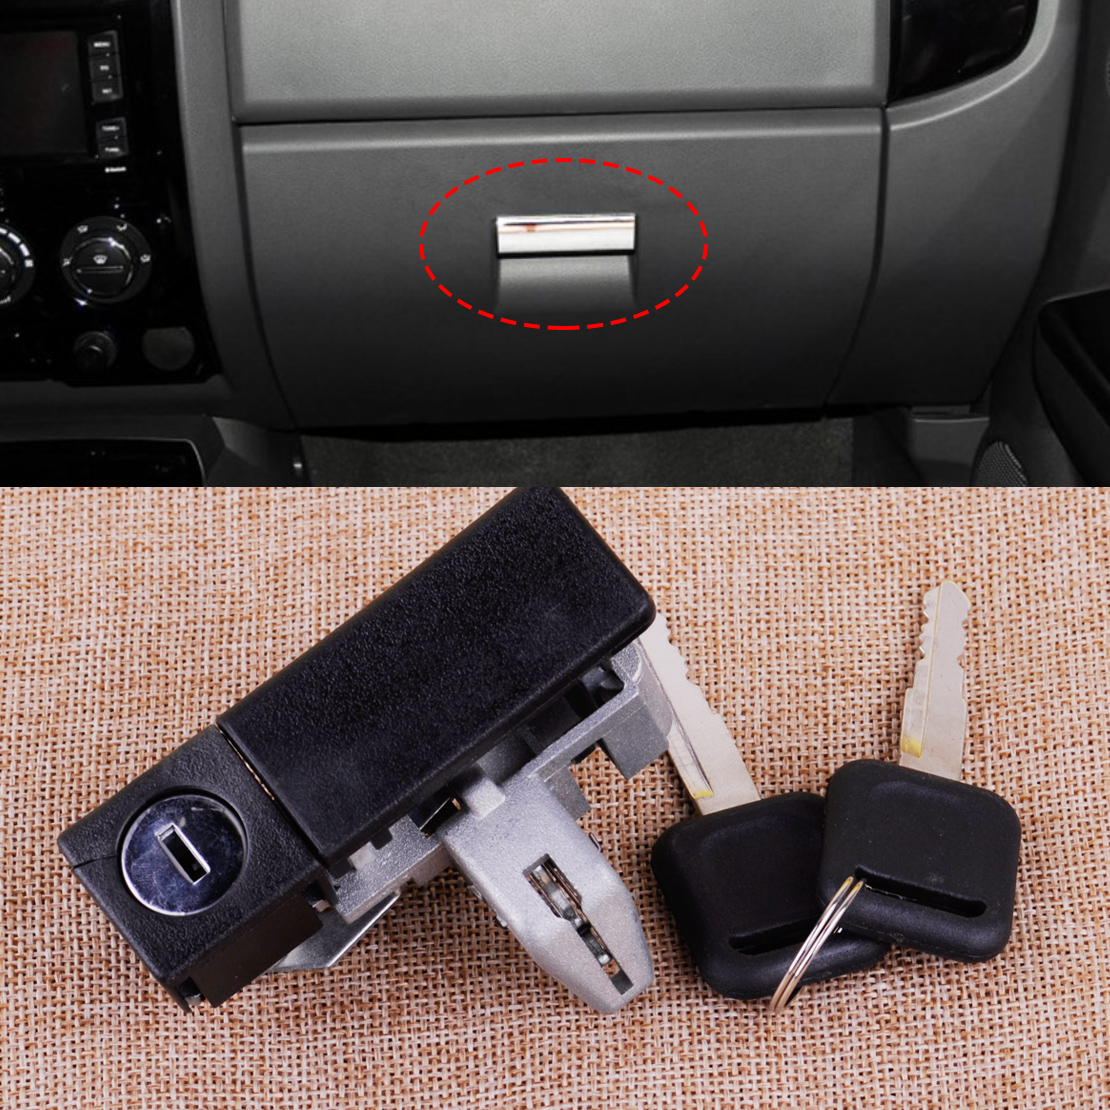 CITALL Car Glove Tool Box Lock With Two Keys Fit For Great Wall V200 V240 2010 2011 2012 2013 2014 2015